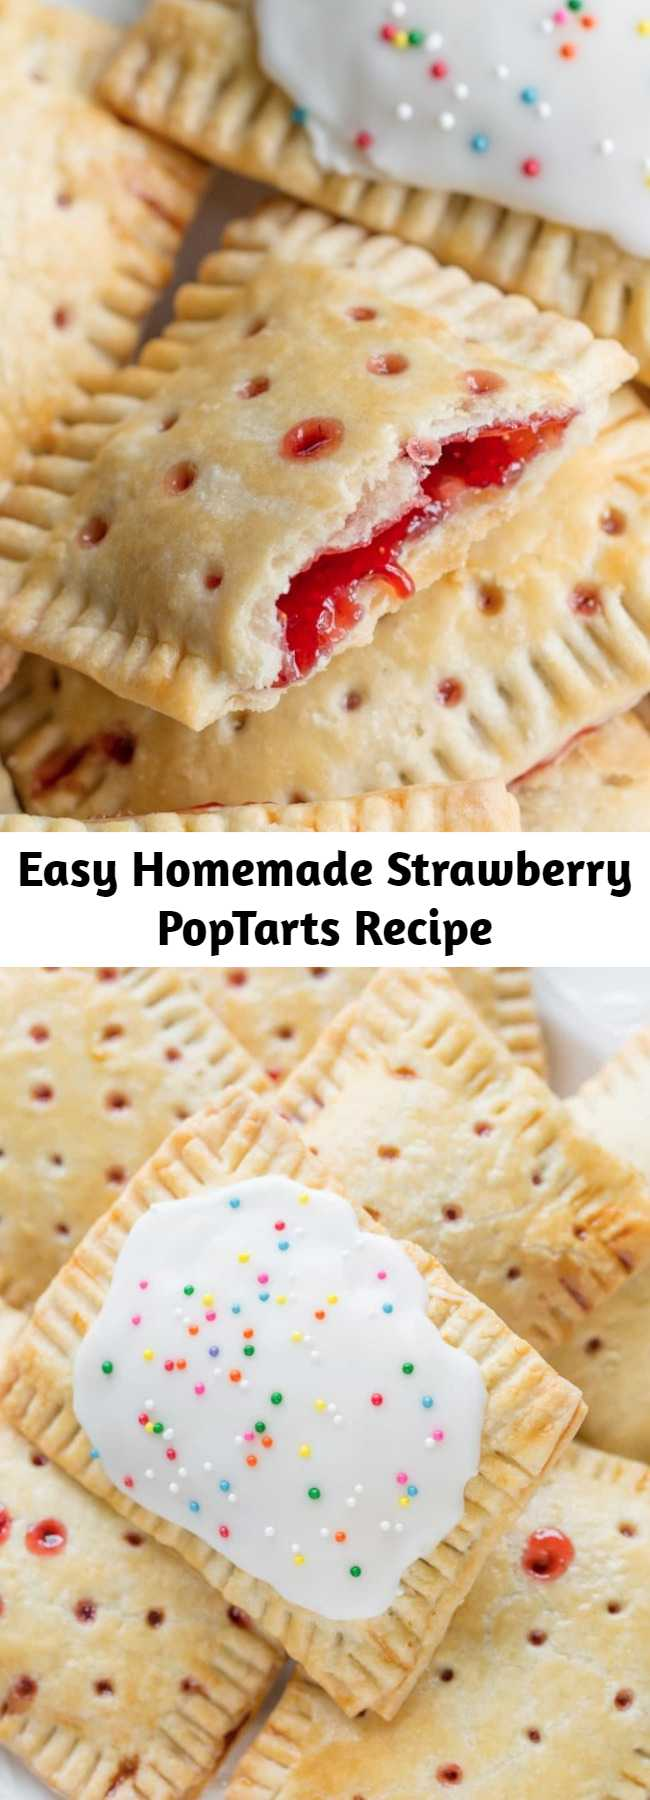 Easy Homemade Strawberry PopTarts Recipe - Flaky pastry filled with homemade strawberry jam or your favorite pie filling. #poptarts #strawberry #handpies #strawberrypie #strawberrypoptarts #flakycrust